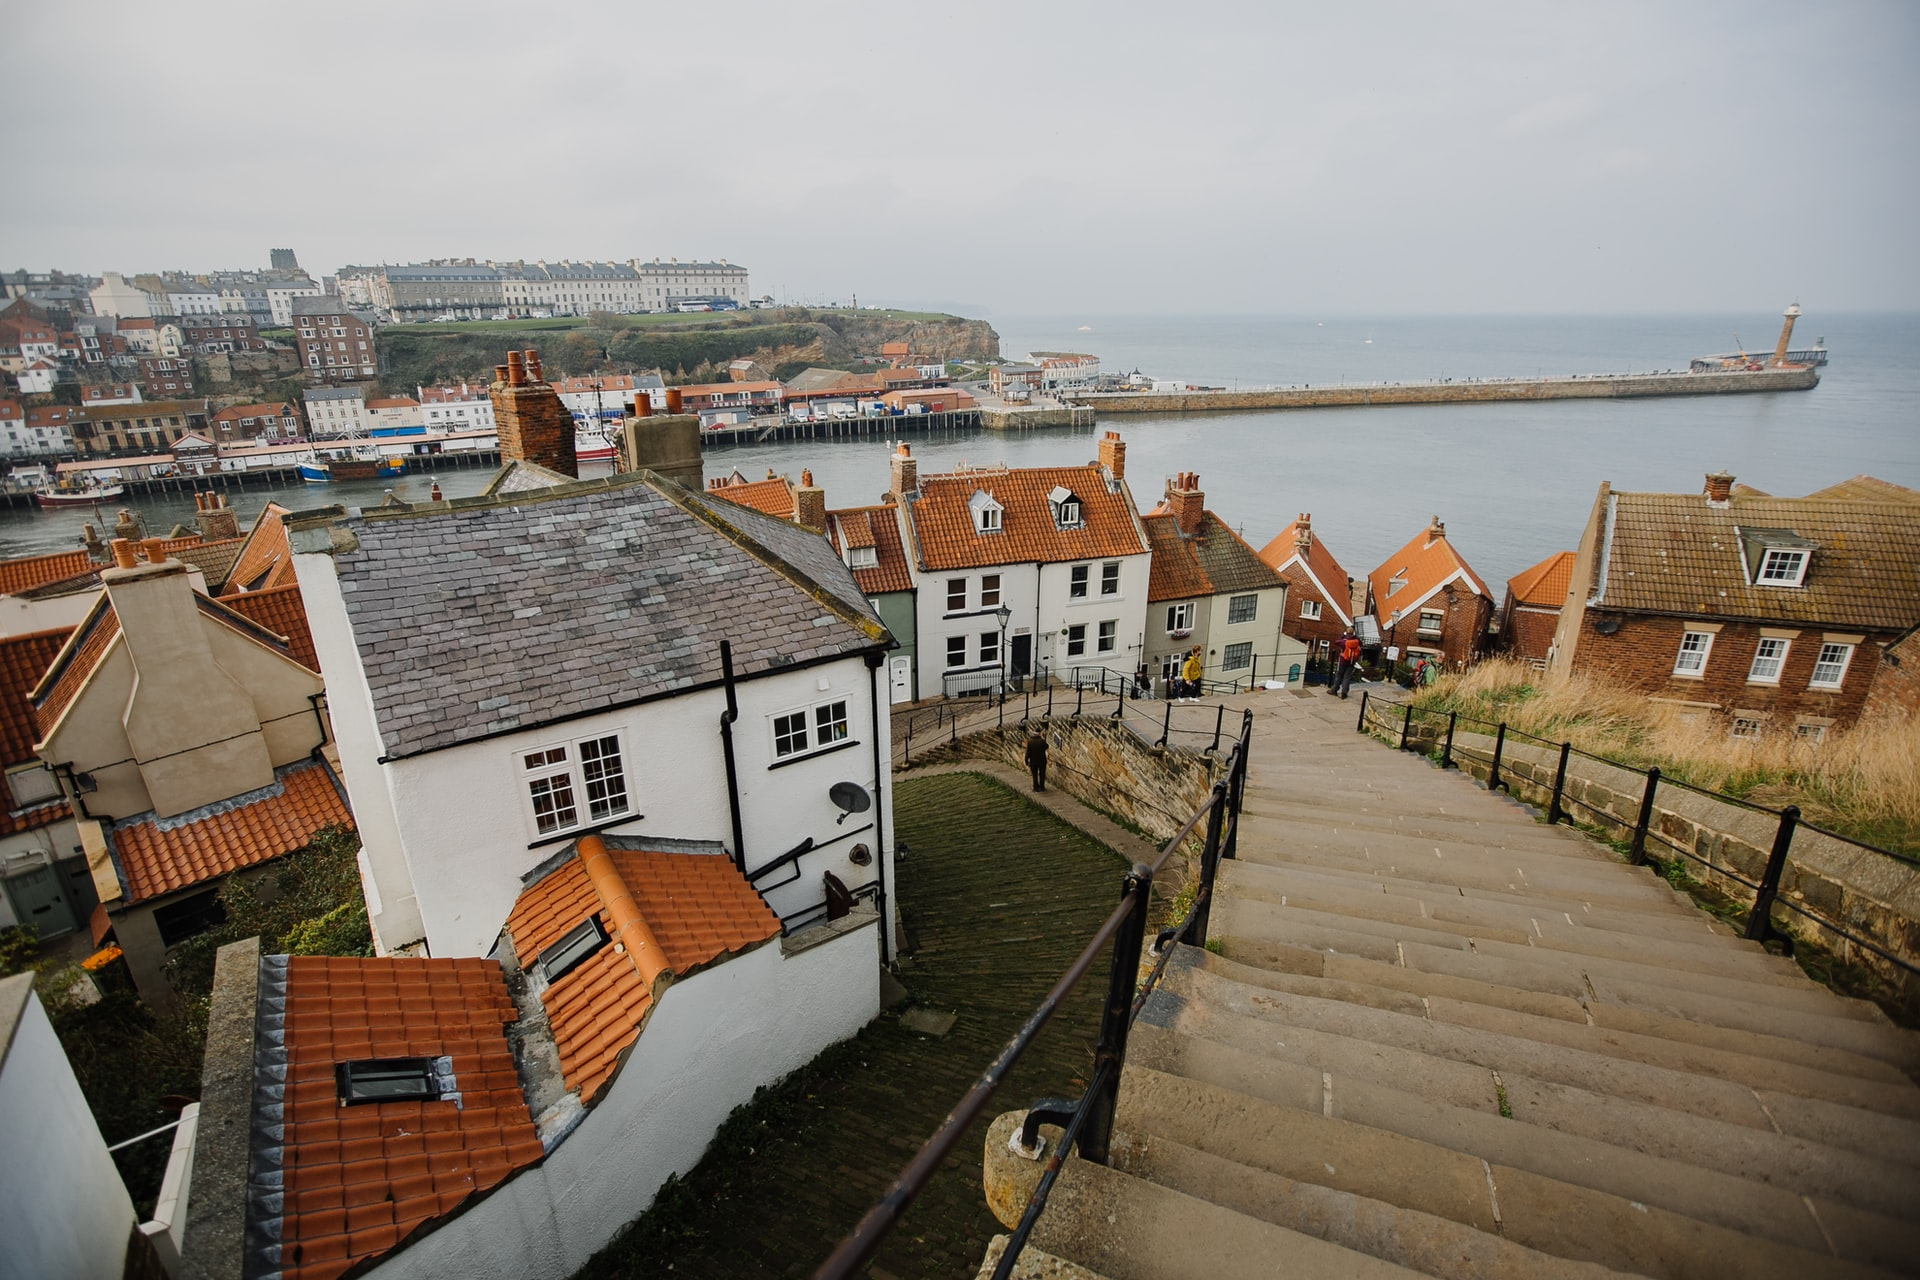 steps-heading-down-to-harbour-with-orange-roofed-houses-in-whitby